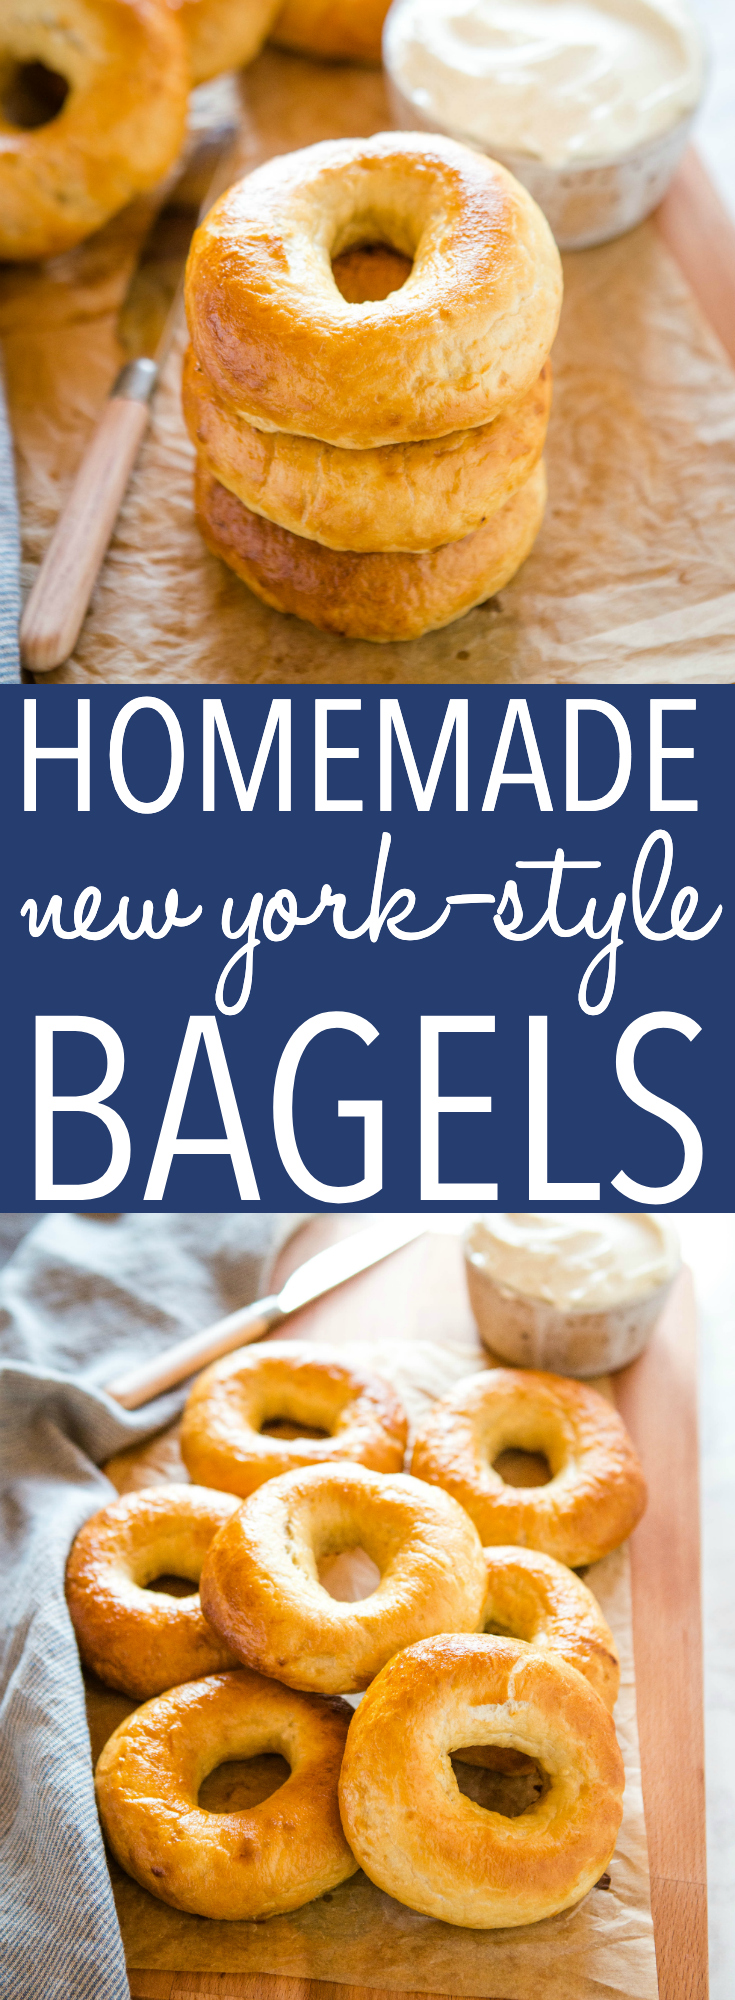 These Easy Homemade New York Style Bagels are the BEST homemade bagels! They're perfectly dense and chewy and they're SO easy to make with no special equipment or ingredients! Recipe from thebusybaker.ca! #bagels #homemade #newyork #carbs #homemade #bread #easyrecipe #homemadebagels via @busybakerblog